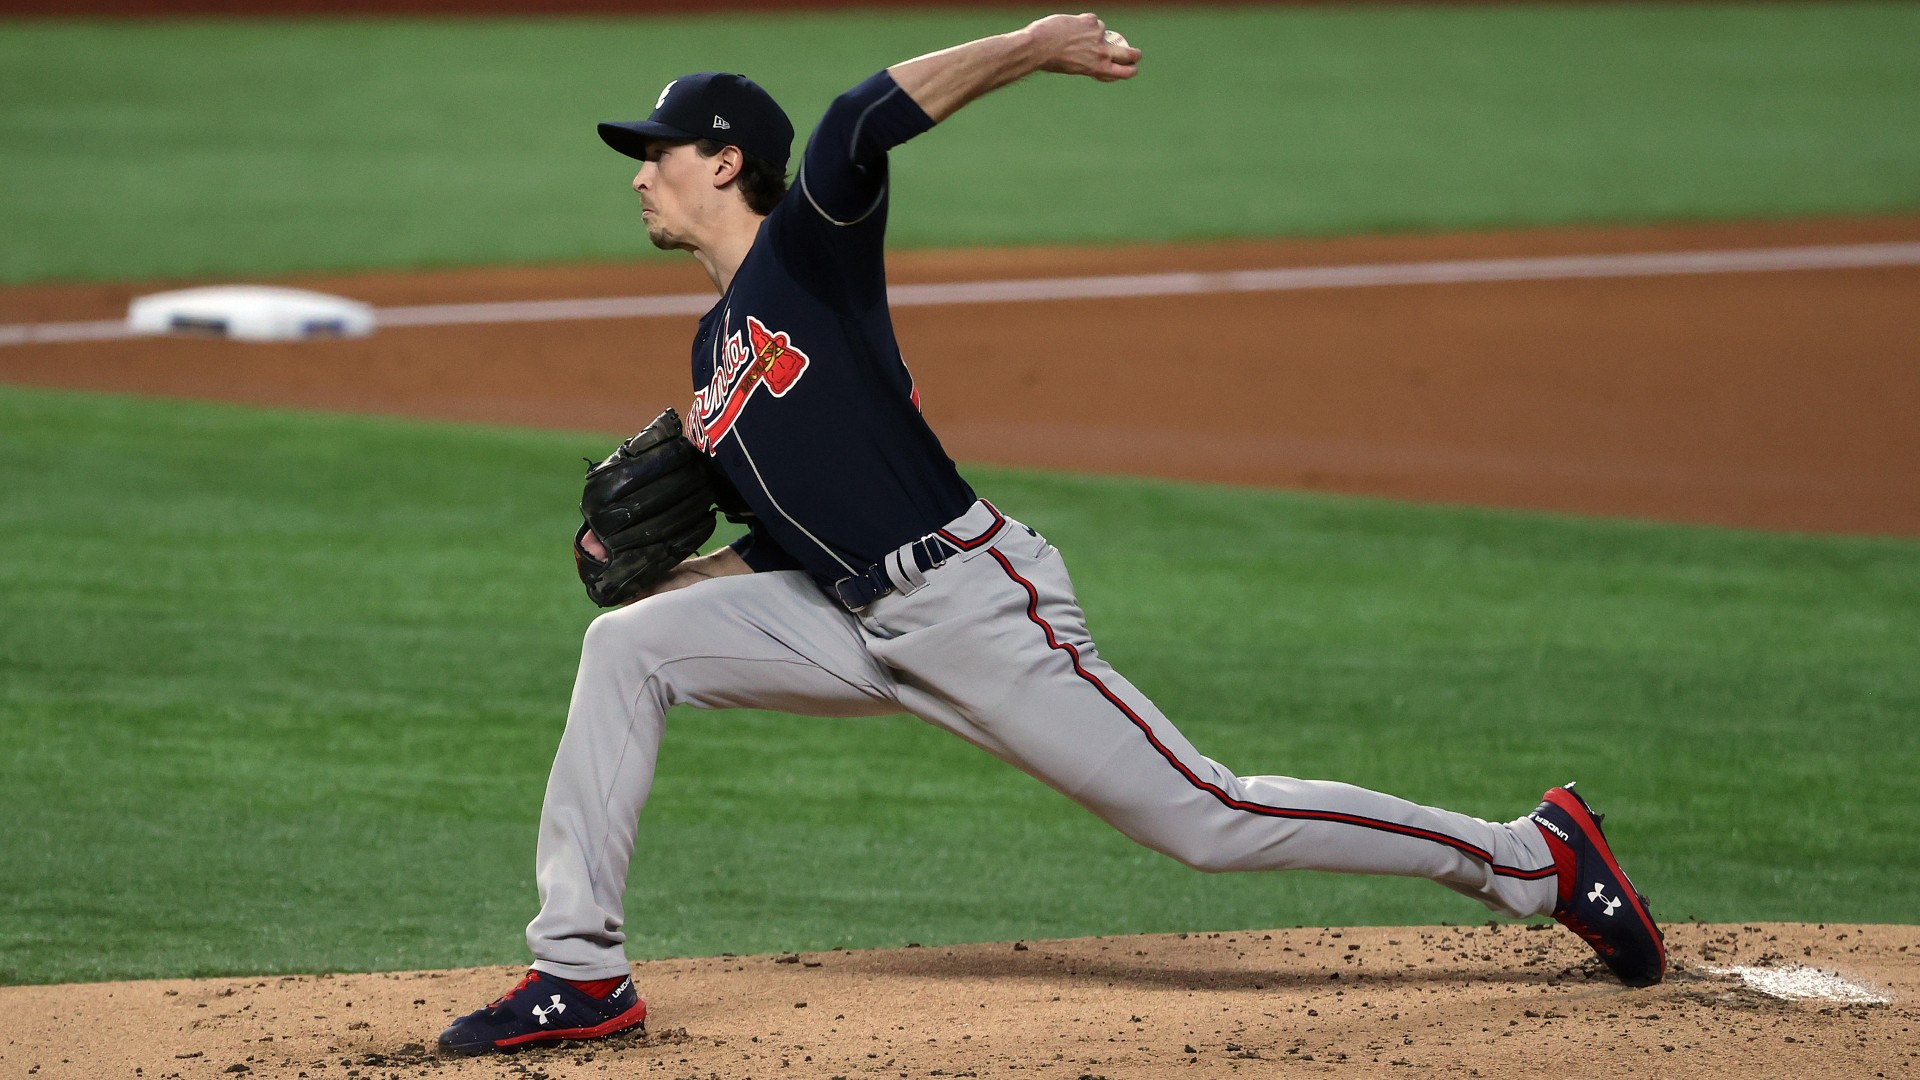 Max Fried's Game 1 gem had shades of another Braves lefty's NLCS brilliance 1